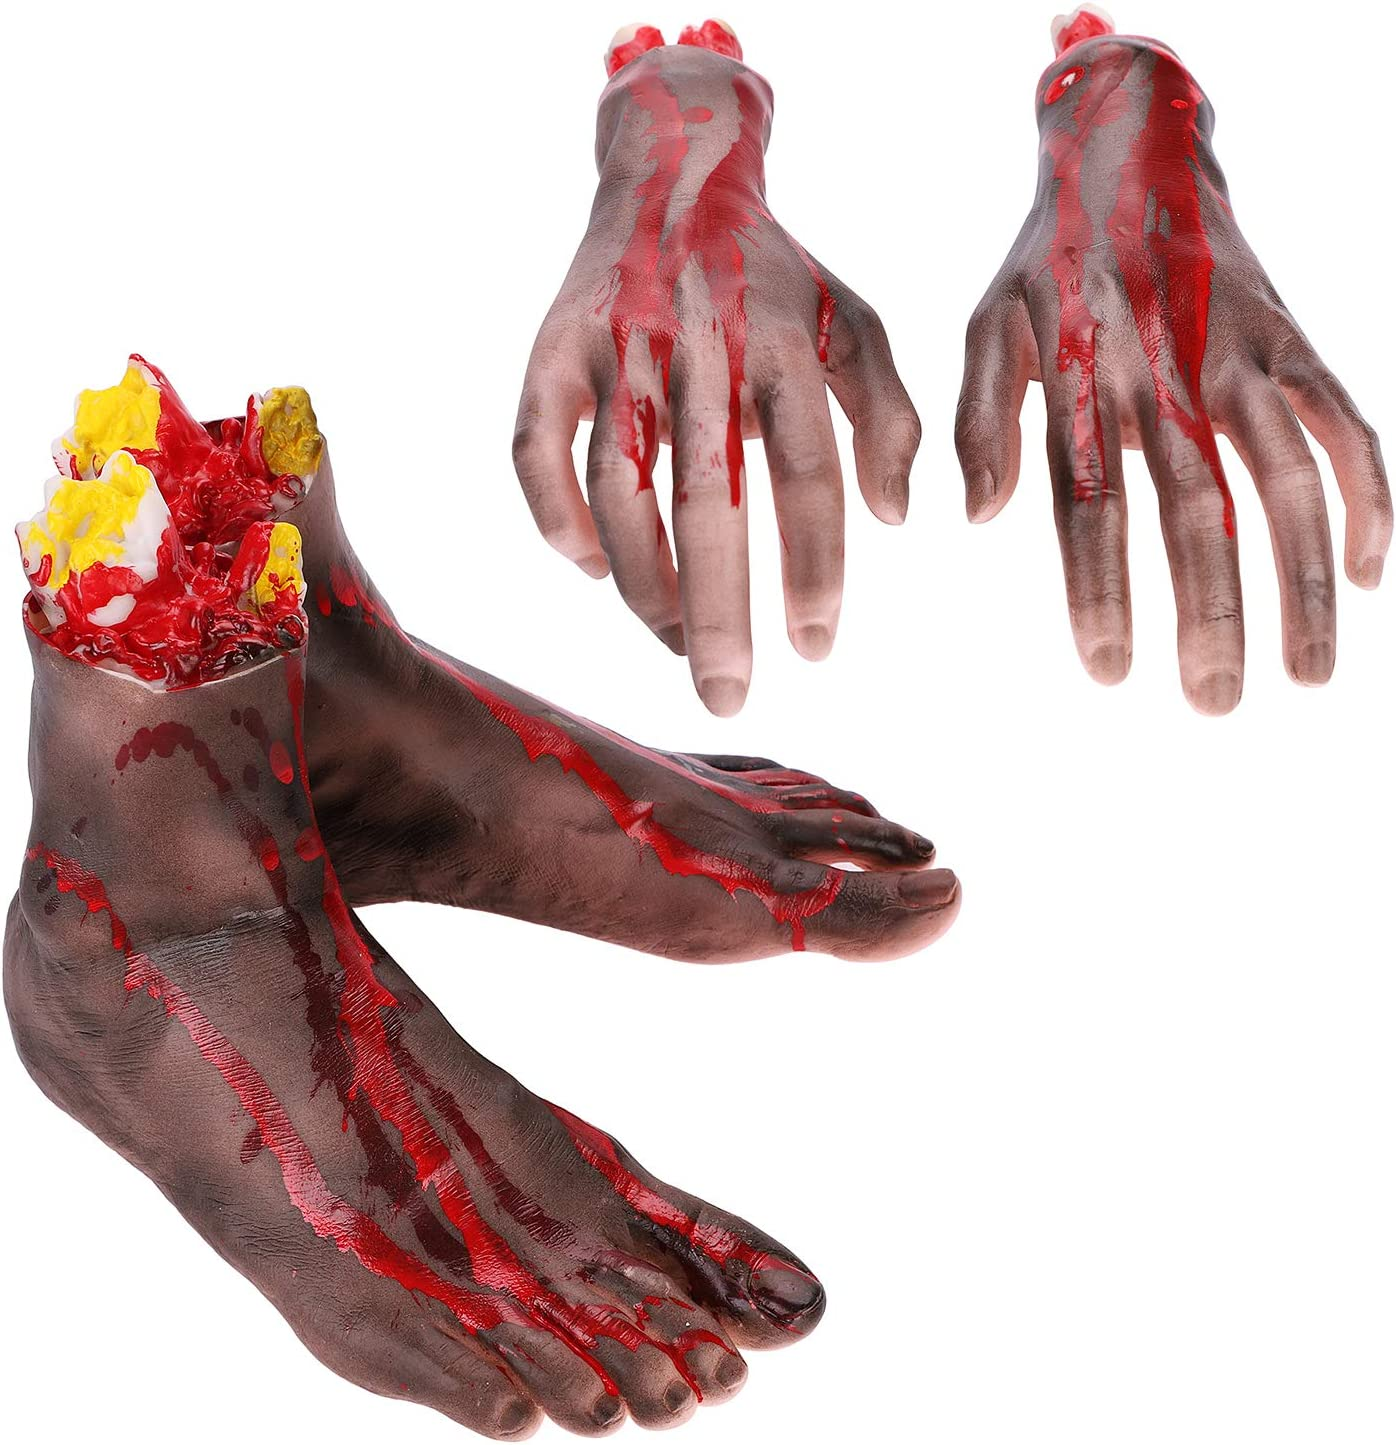 Severed Foot,Halloween Severed Limbs Bloody Hand Severed Arm Prop Haunted House Prop Bloody Arm Severed Hand Prop Severed Finger Dead Body Prop Parts Broken Arm Scary Hand Horror Halloween Accessories